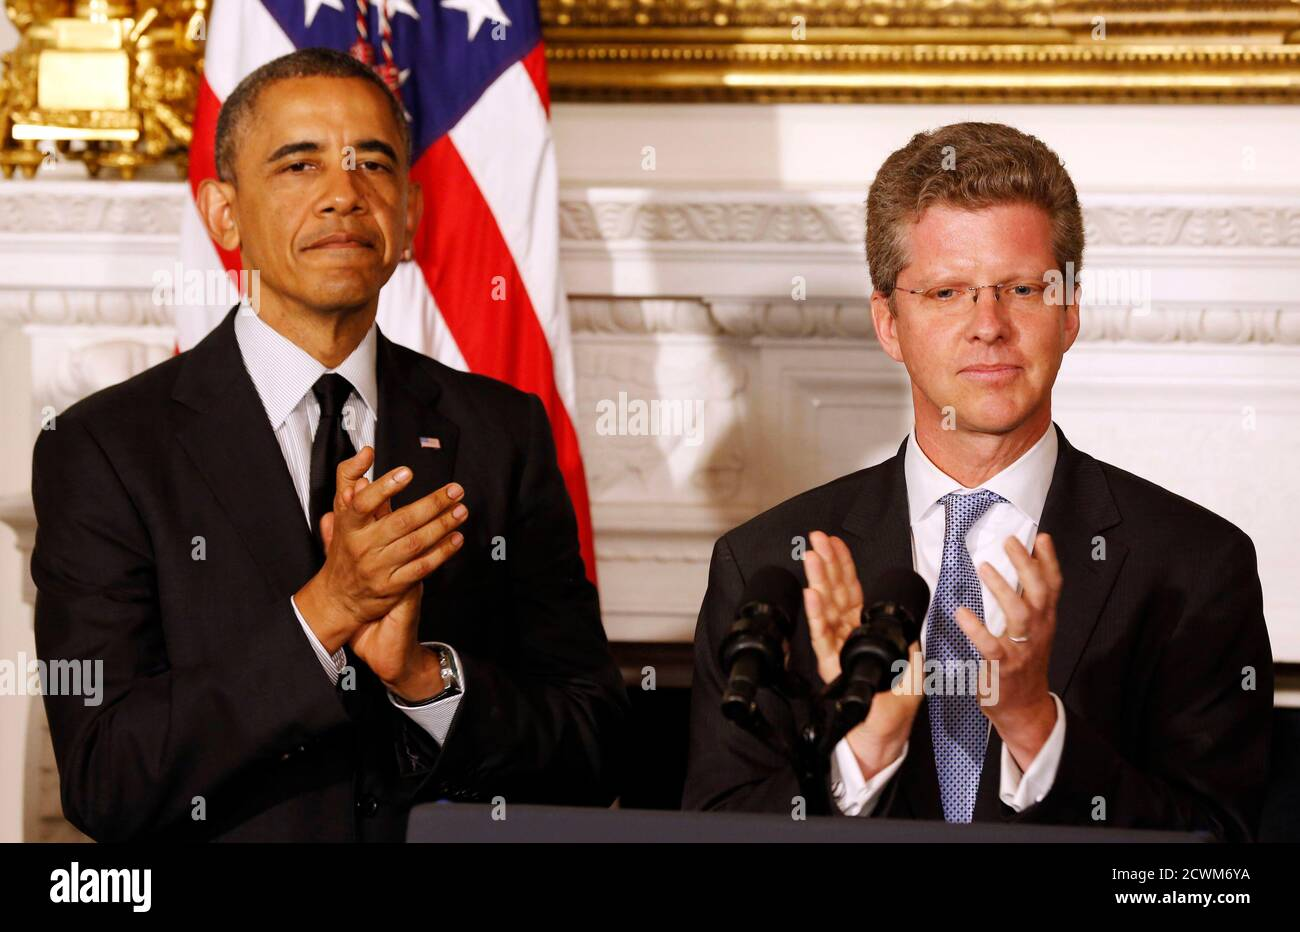 U.S. President Barack Obama announces that Secretary of HUD Shaun Donovan (R) will be his choice as the new Director of OMB, in the State Dining Room at the White House in Washington May 23, 2014. REUTERS/Larry Downing   (UNITED STATES - Tags: POLITICS BUSINESS) Stock Photo